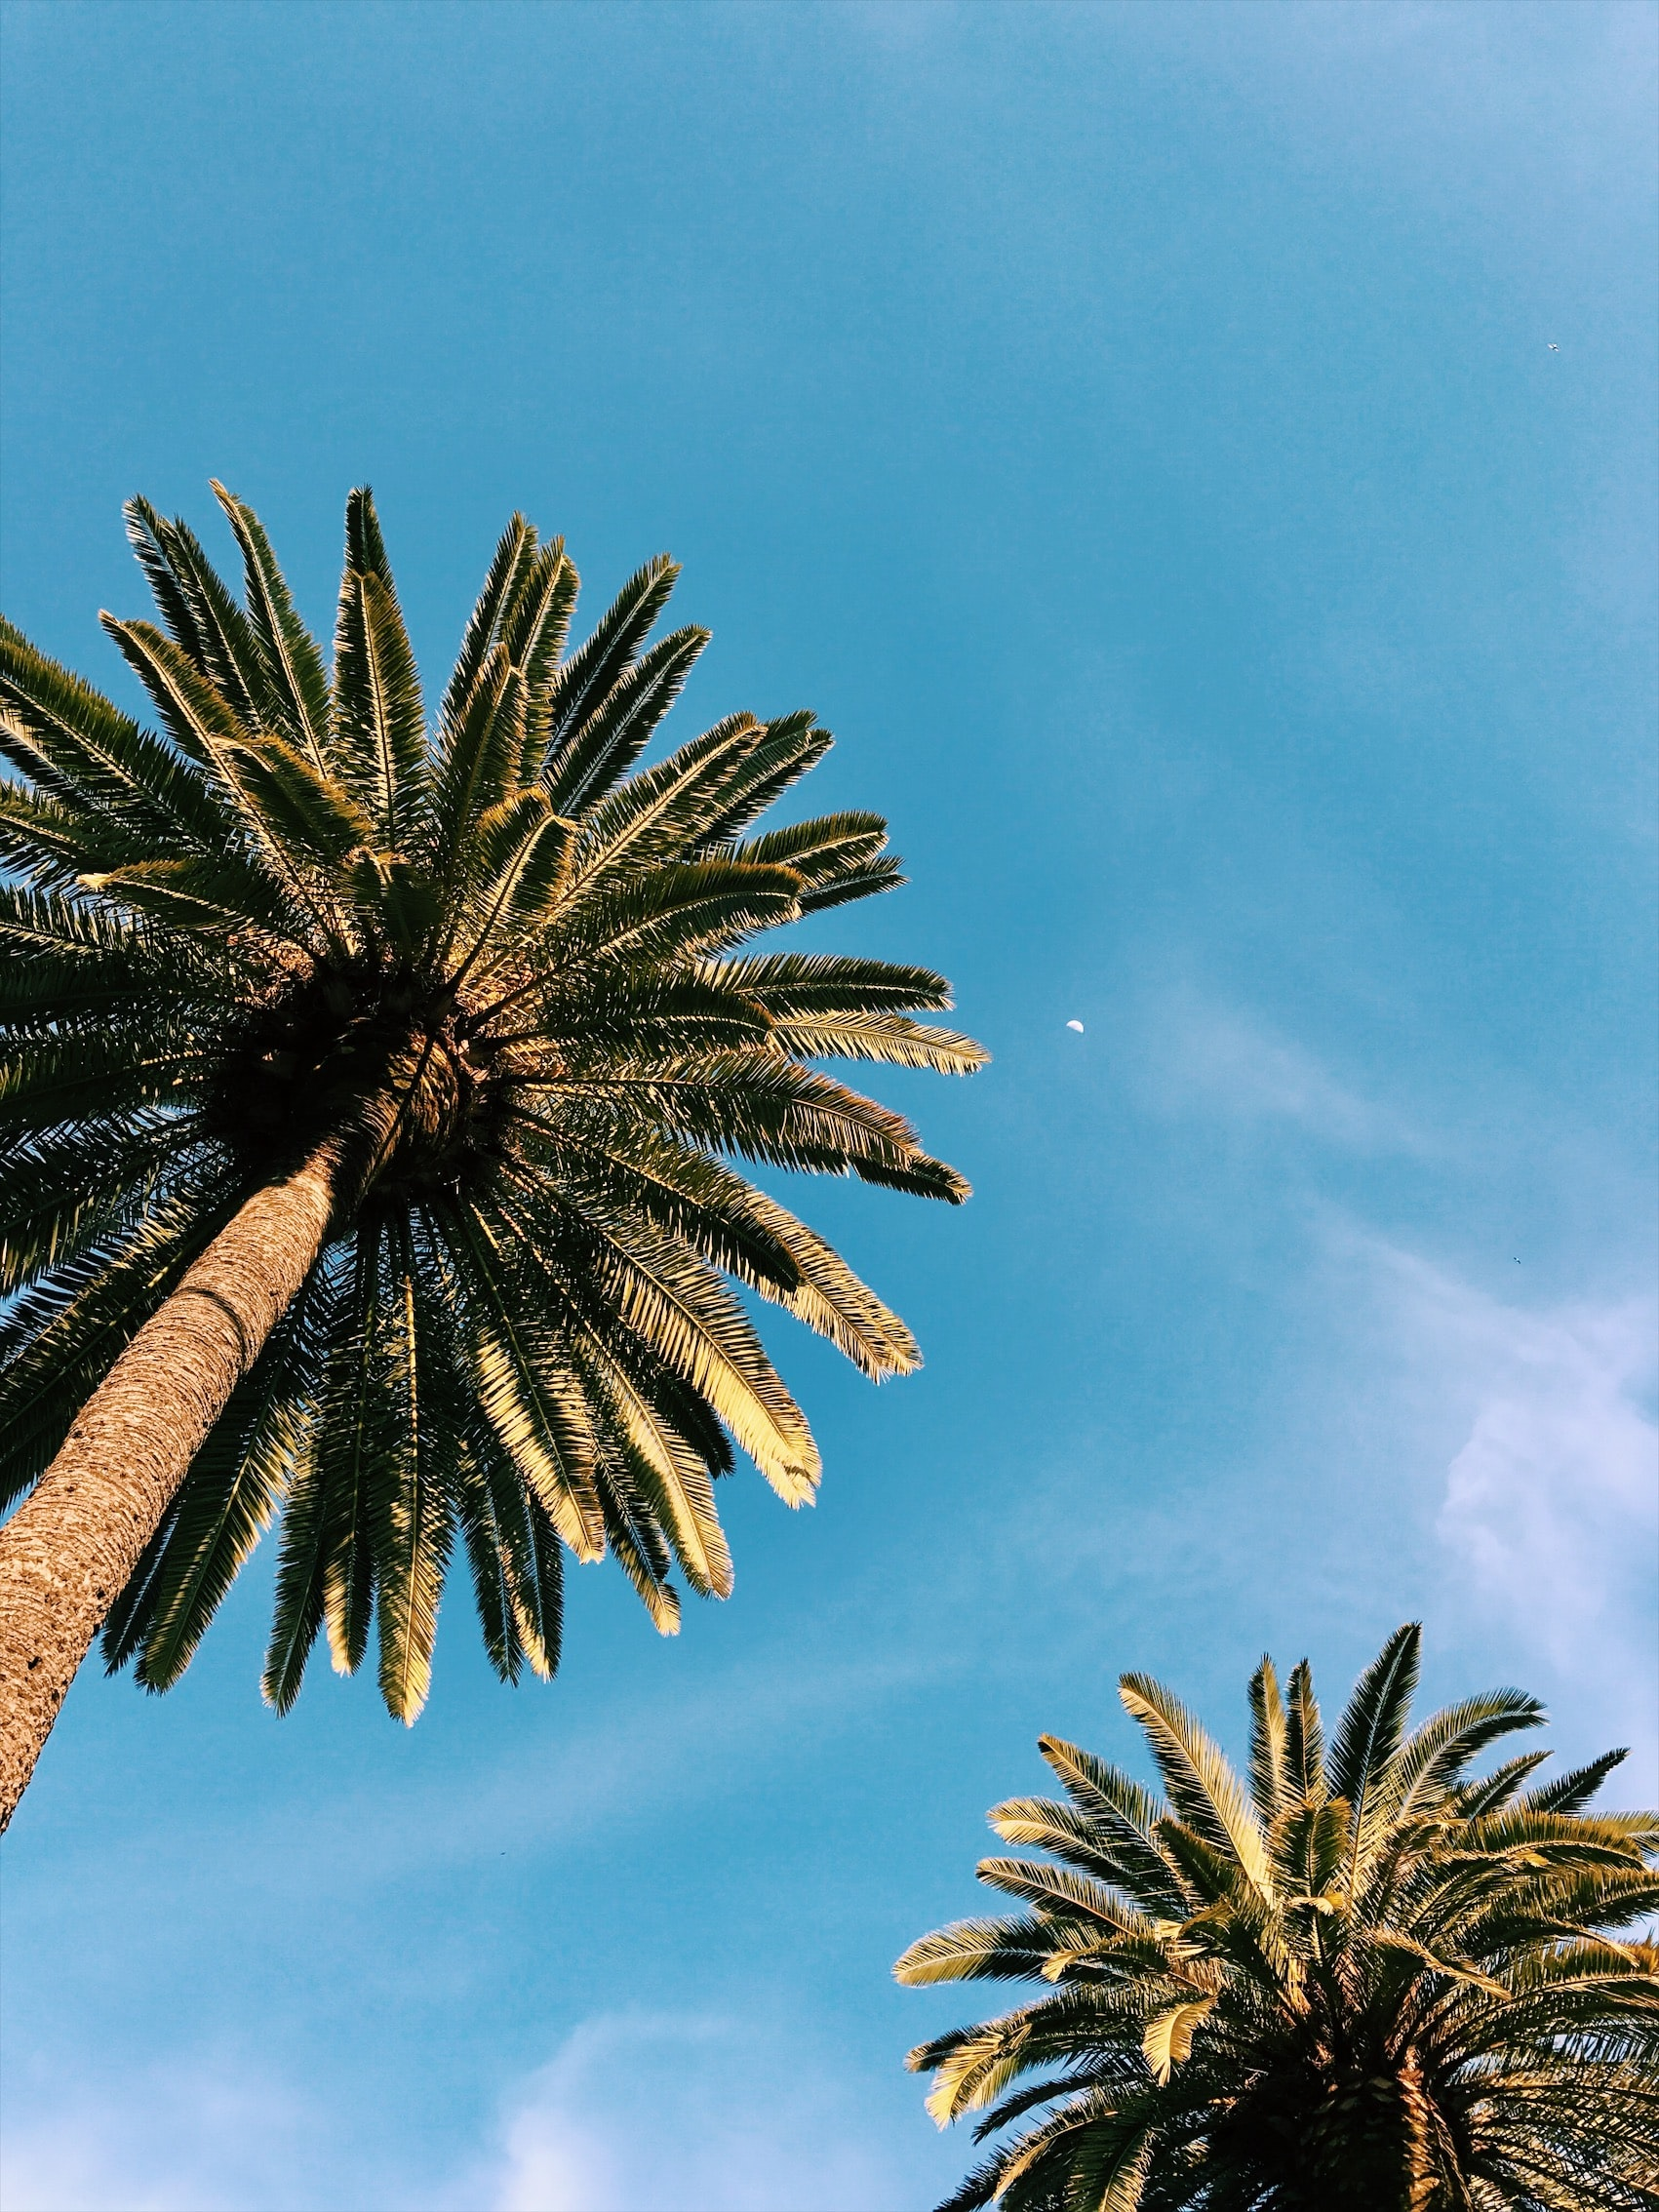 twp palm trees under blue sky at daytime